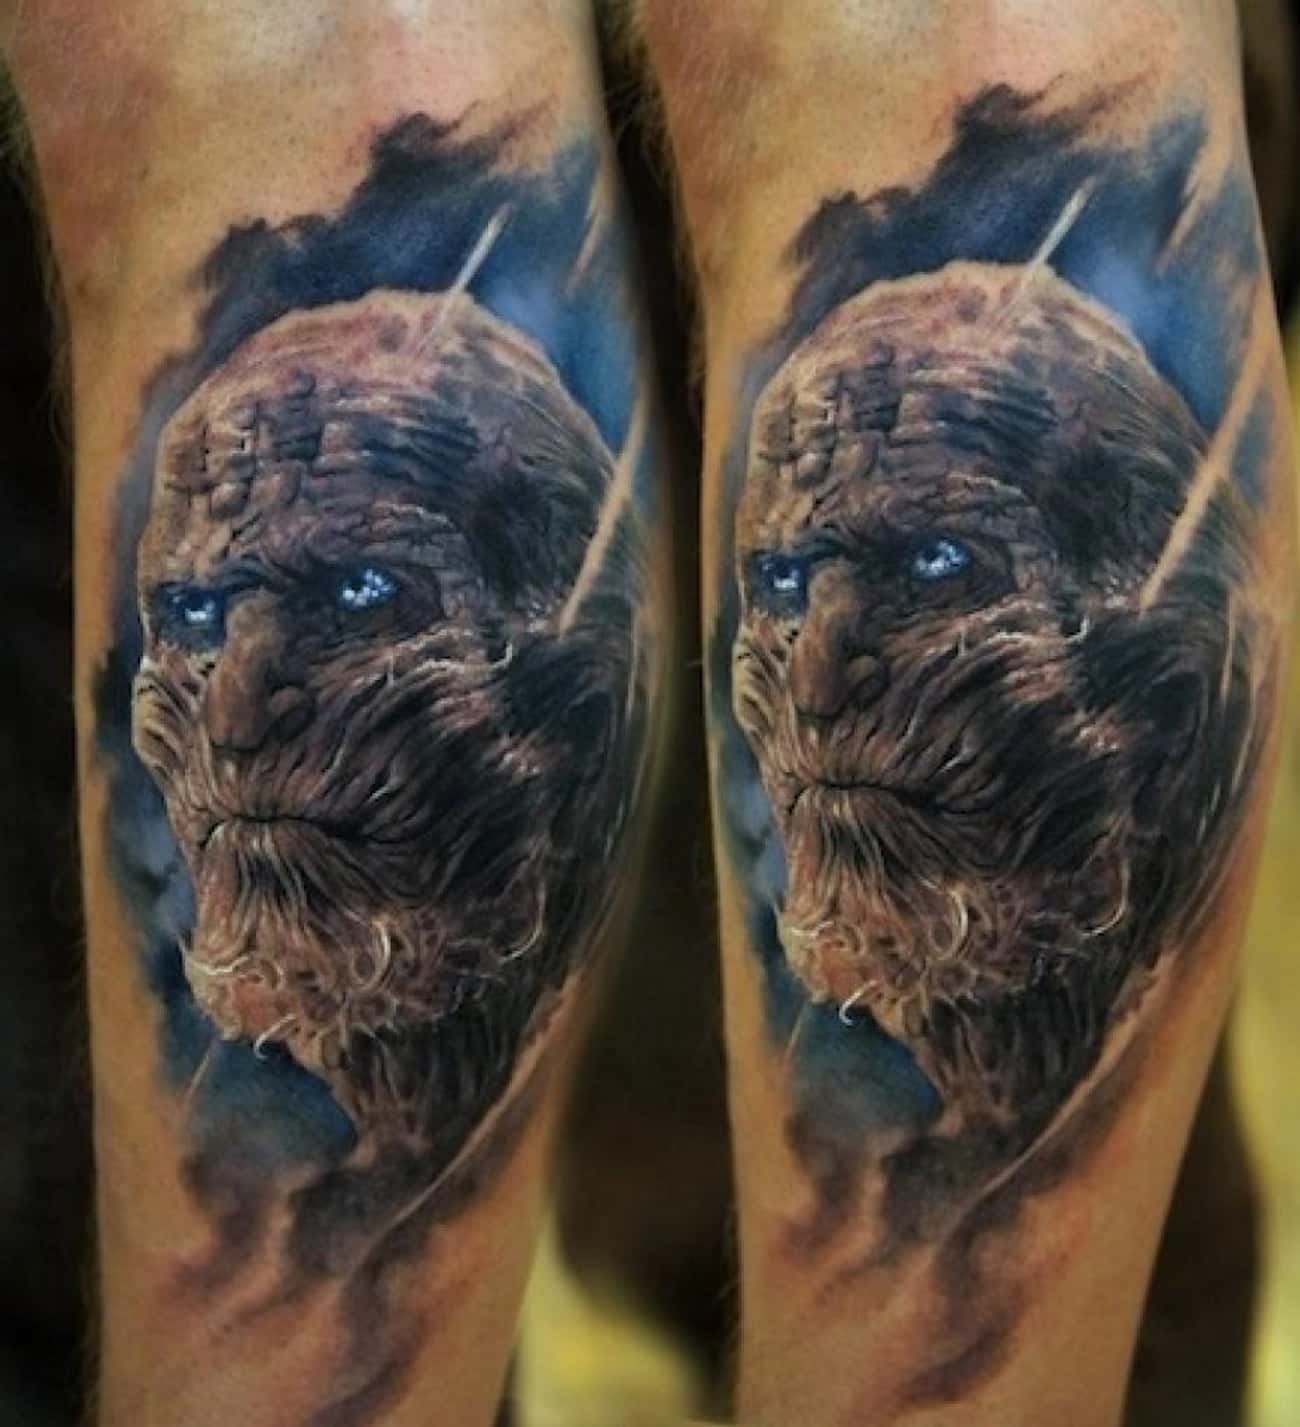 Whitewalker is listed (or ranked) 3 on the list The Coolest Game of Thrones Inspired Tattoos